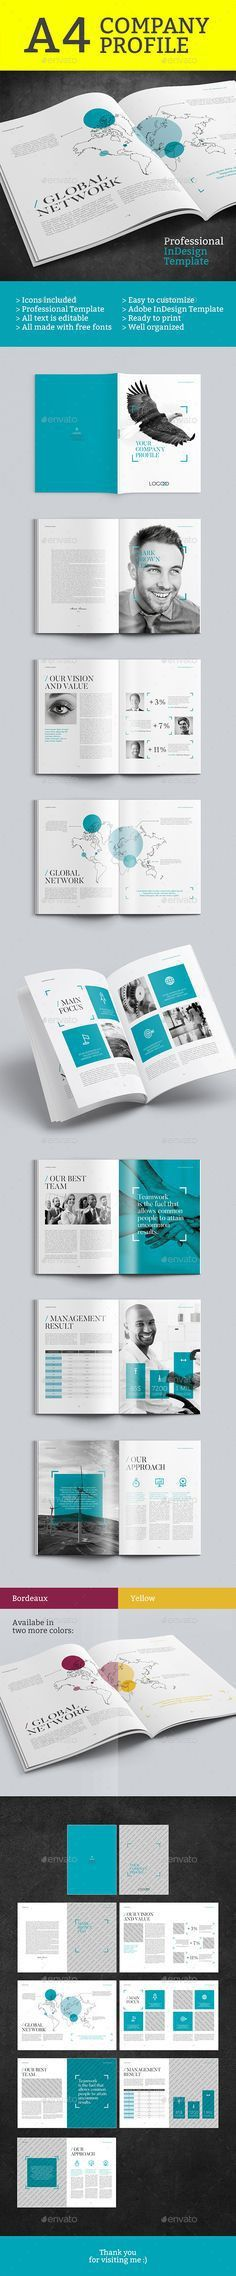 Company Profile Brochure 14 Pages A4 | Company profile, Brochures ...